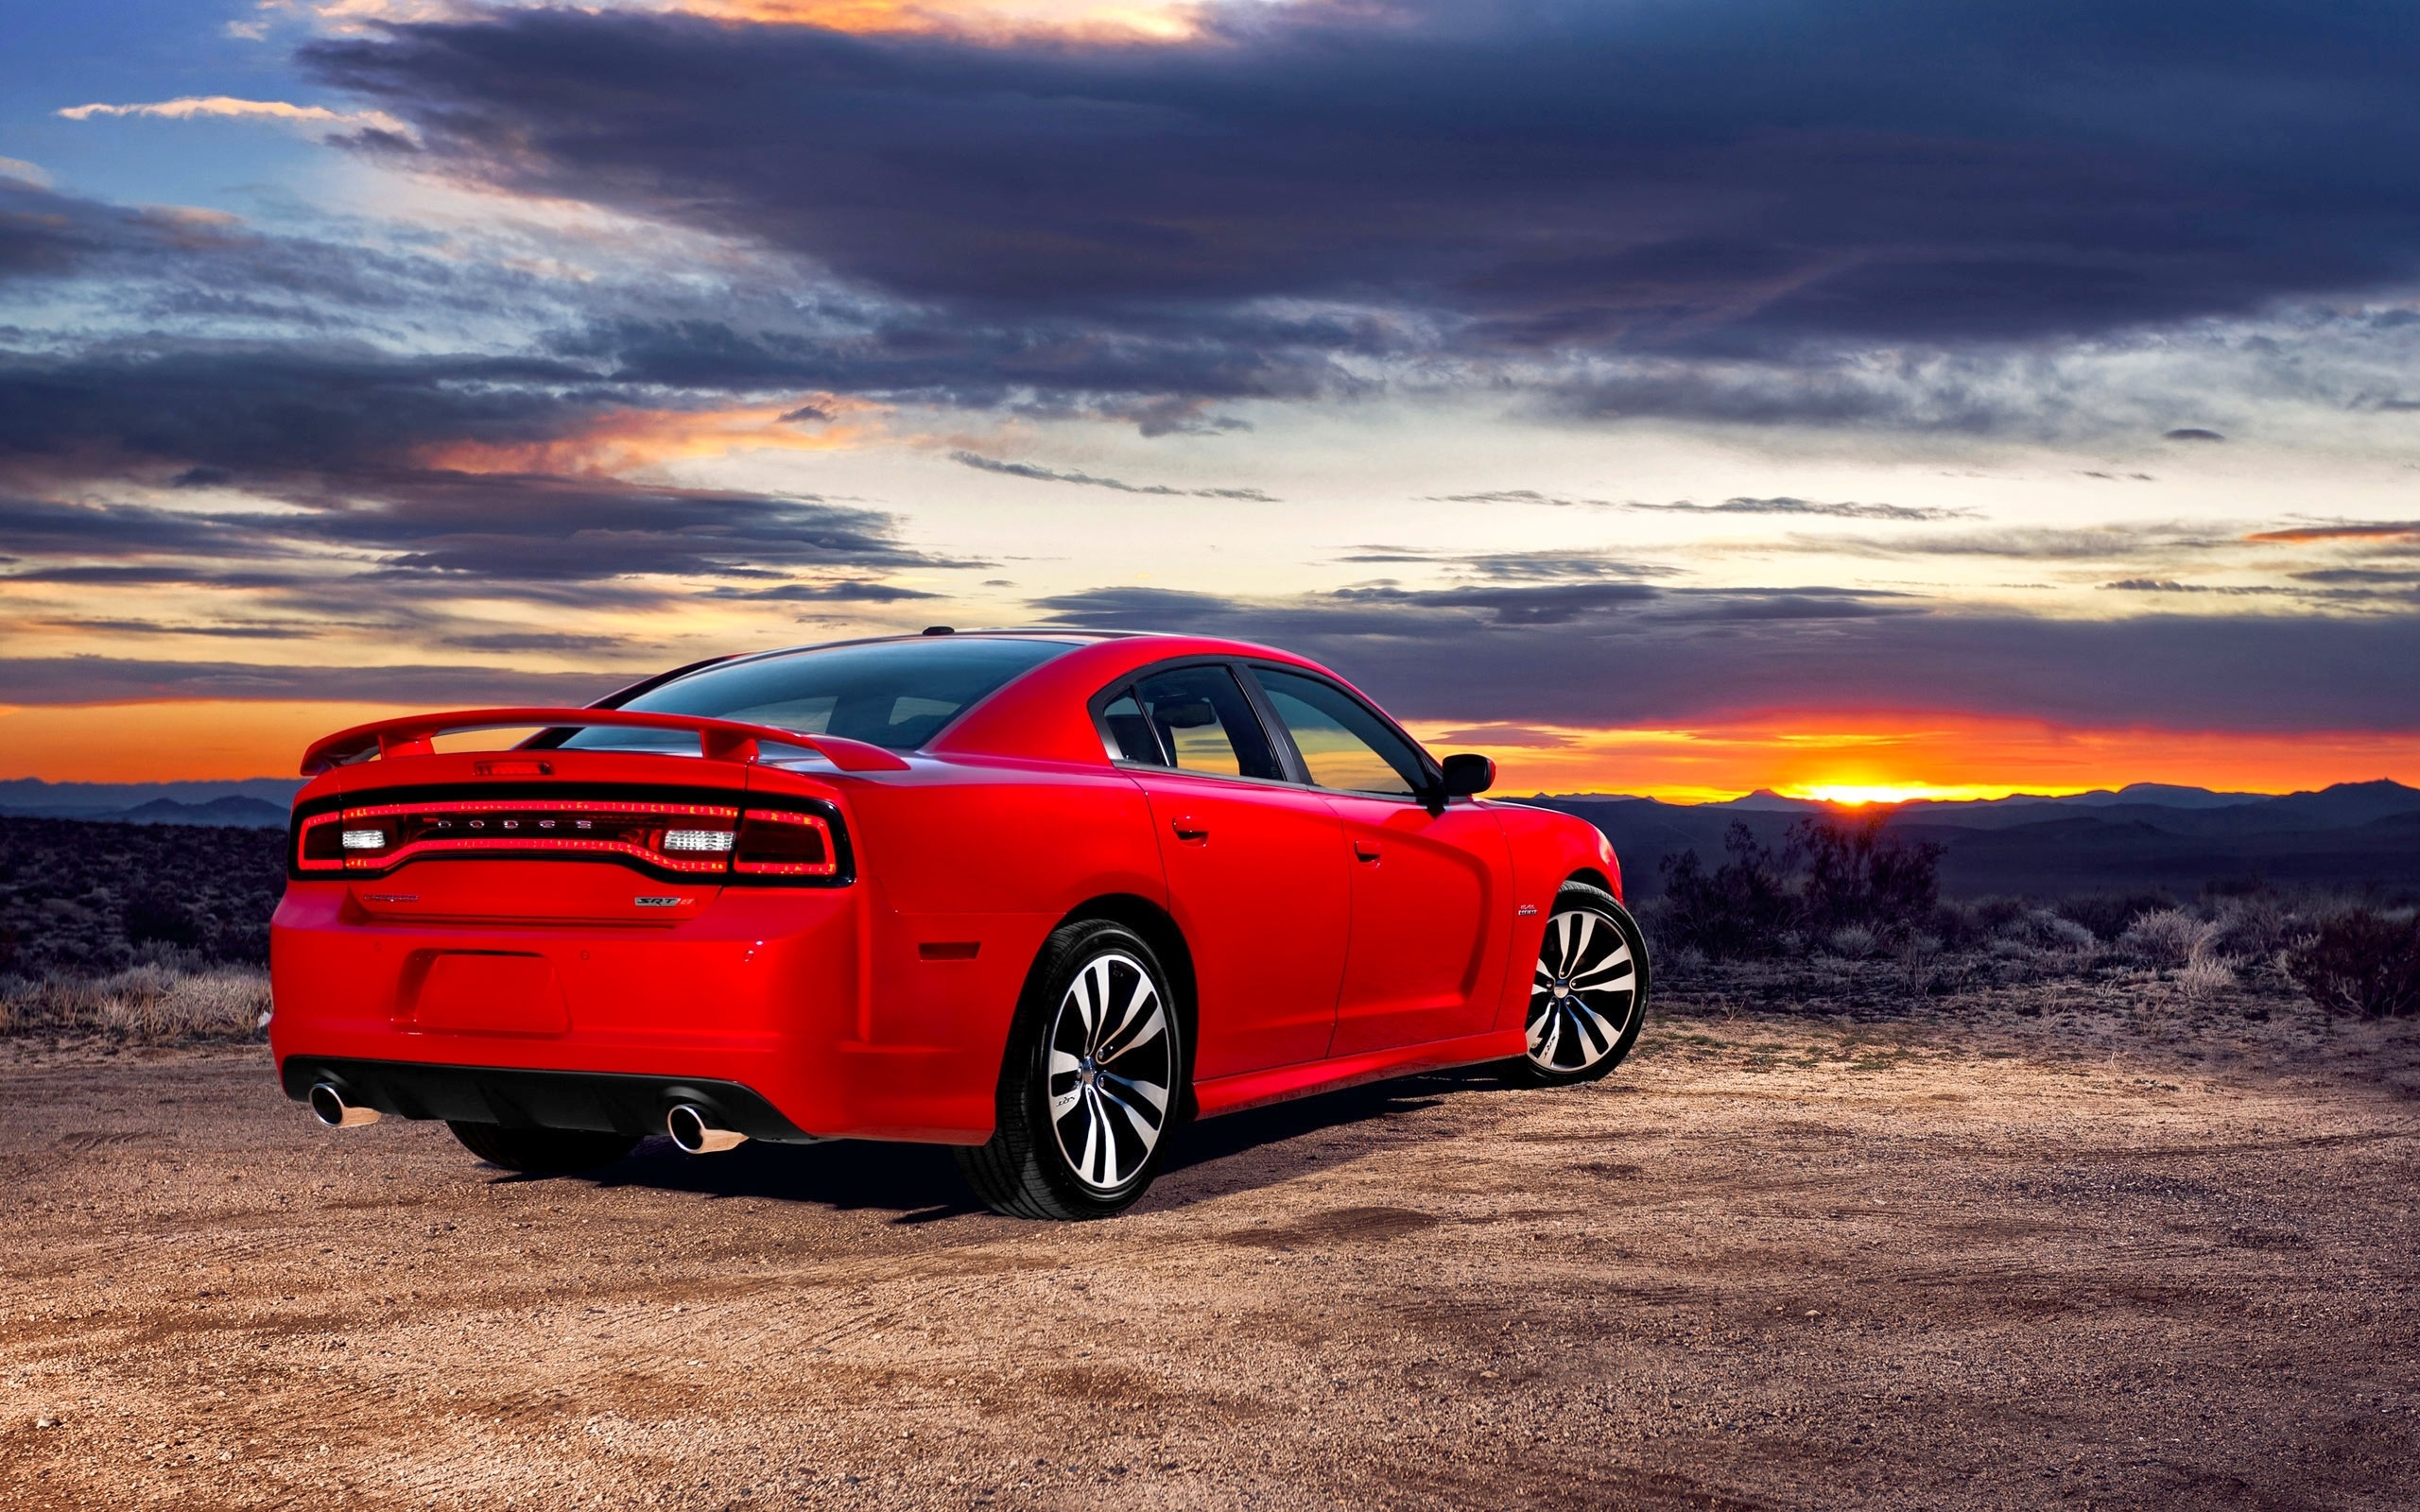 Wallpaper Red Dodge Car Back View 2560x1600 Hd Picture Image